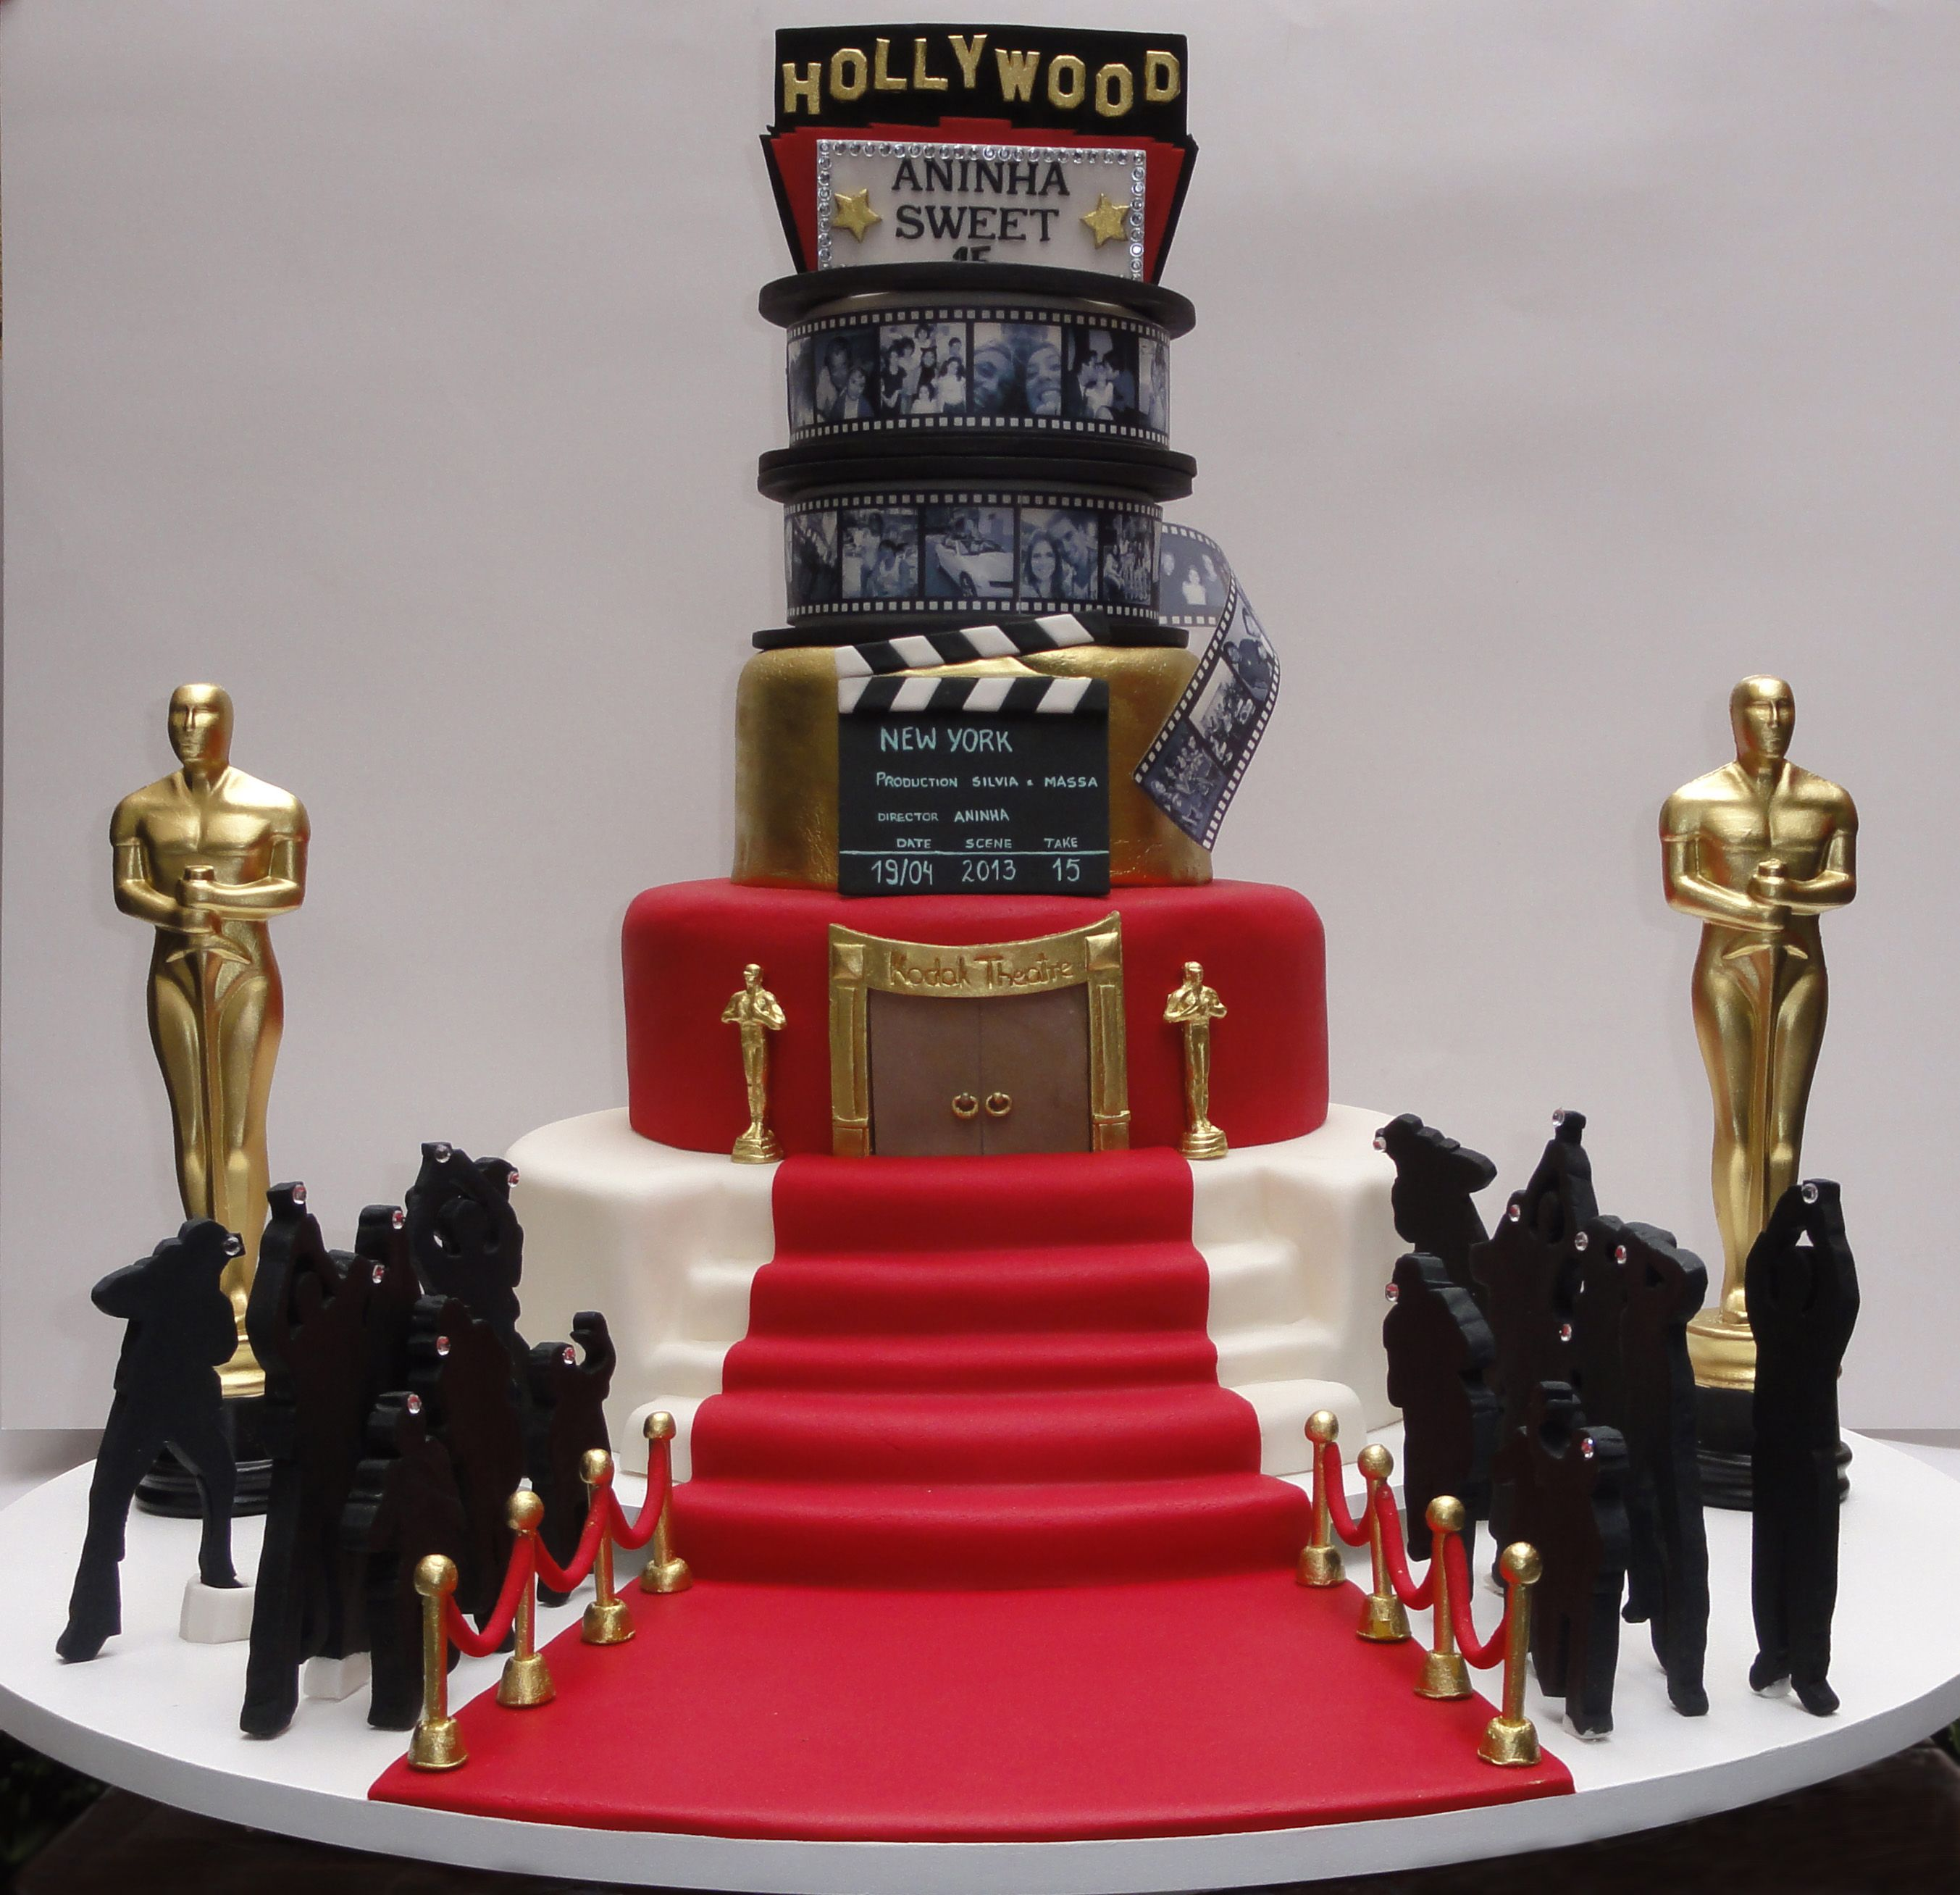 bolo oscar hollywood 15 anos sweet 15 oscar hollywood cake. Black Bedroom Furniture Sets. Home Design Ideas